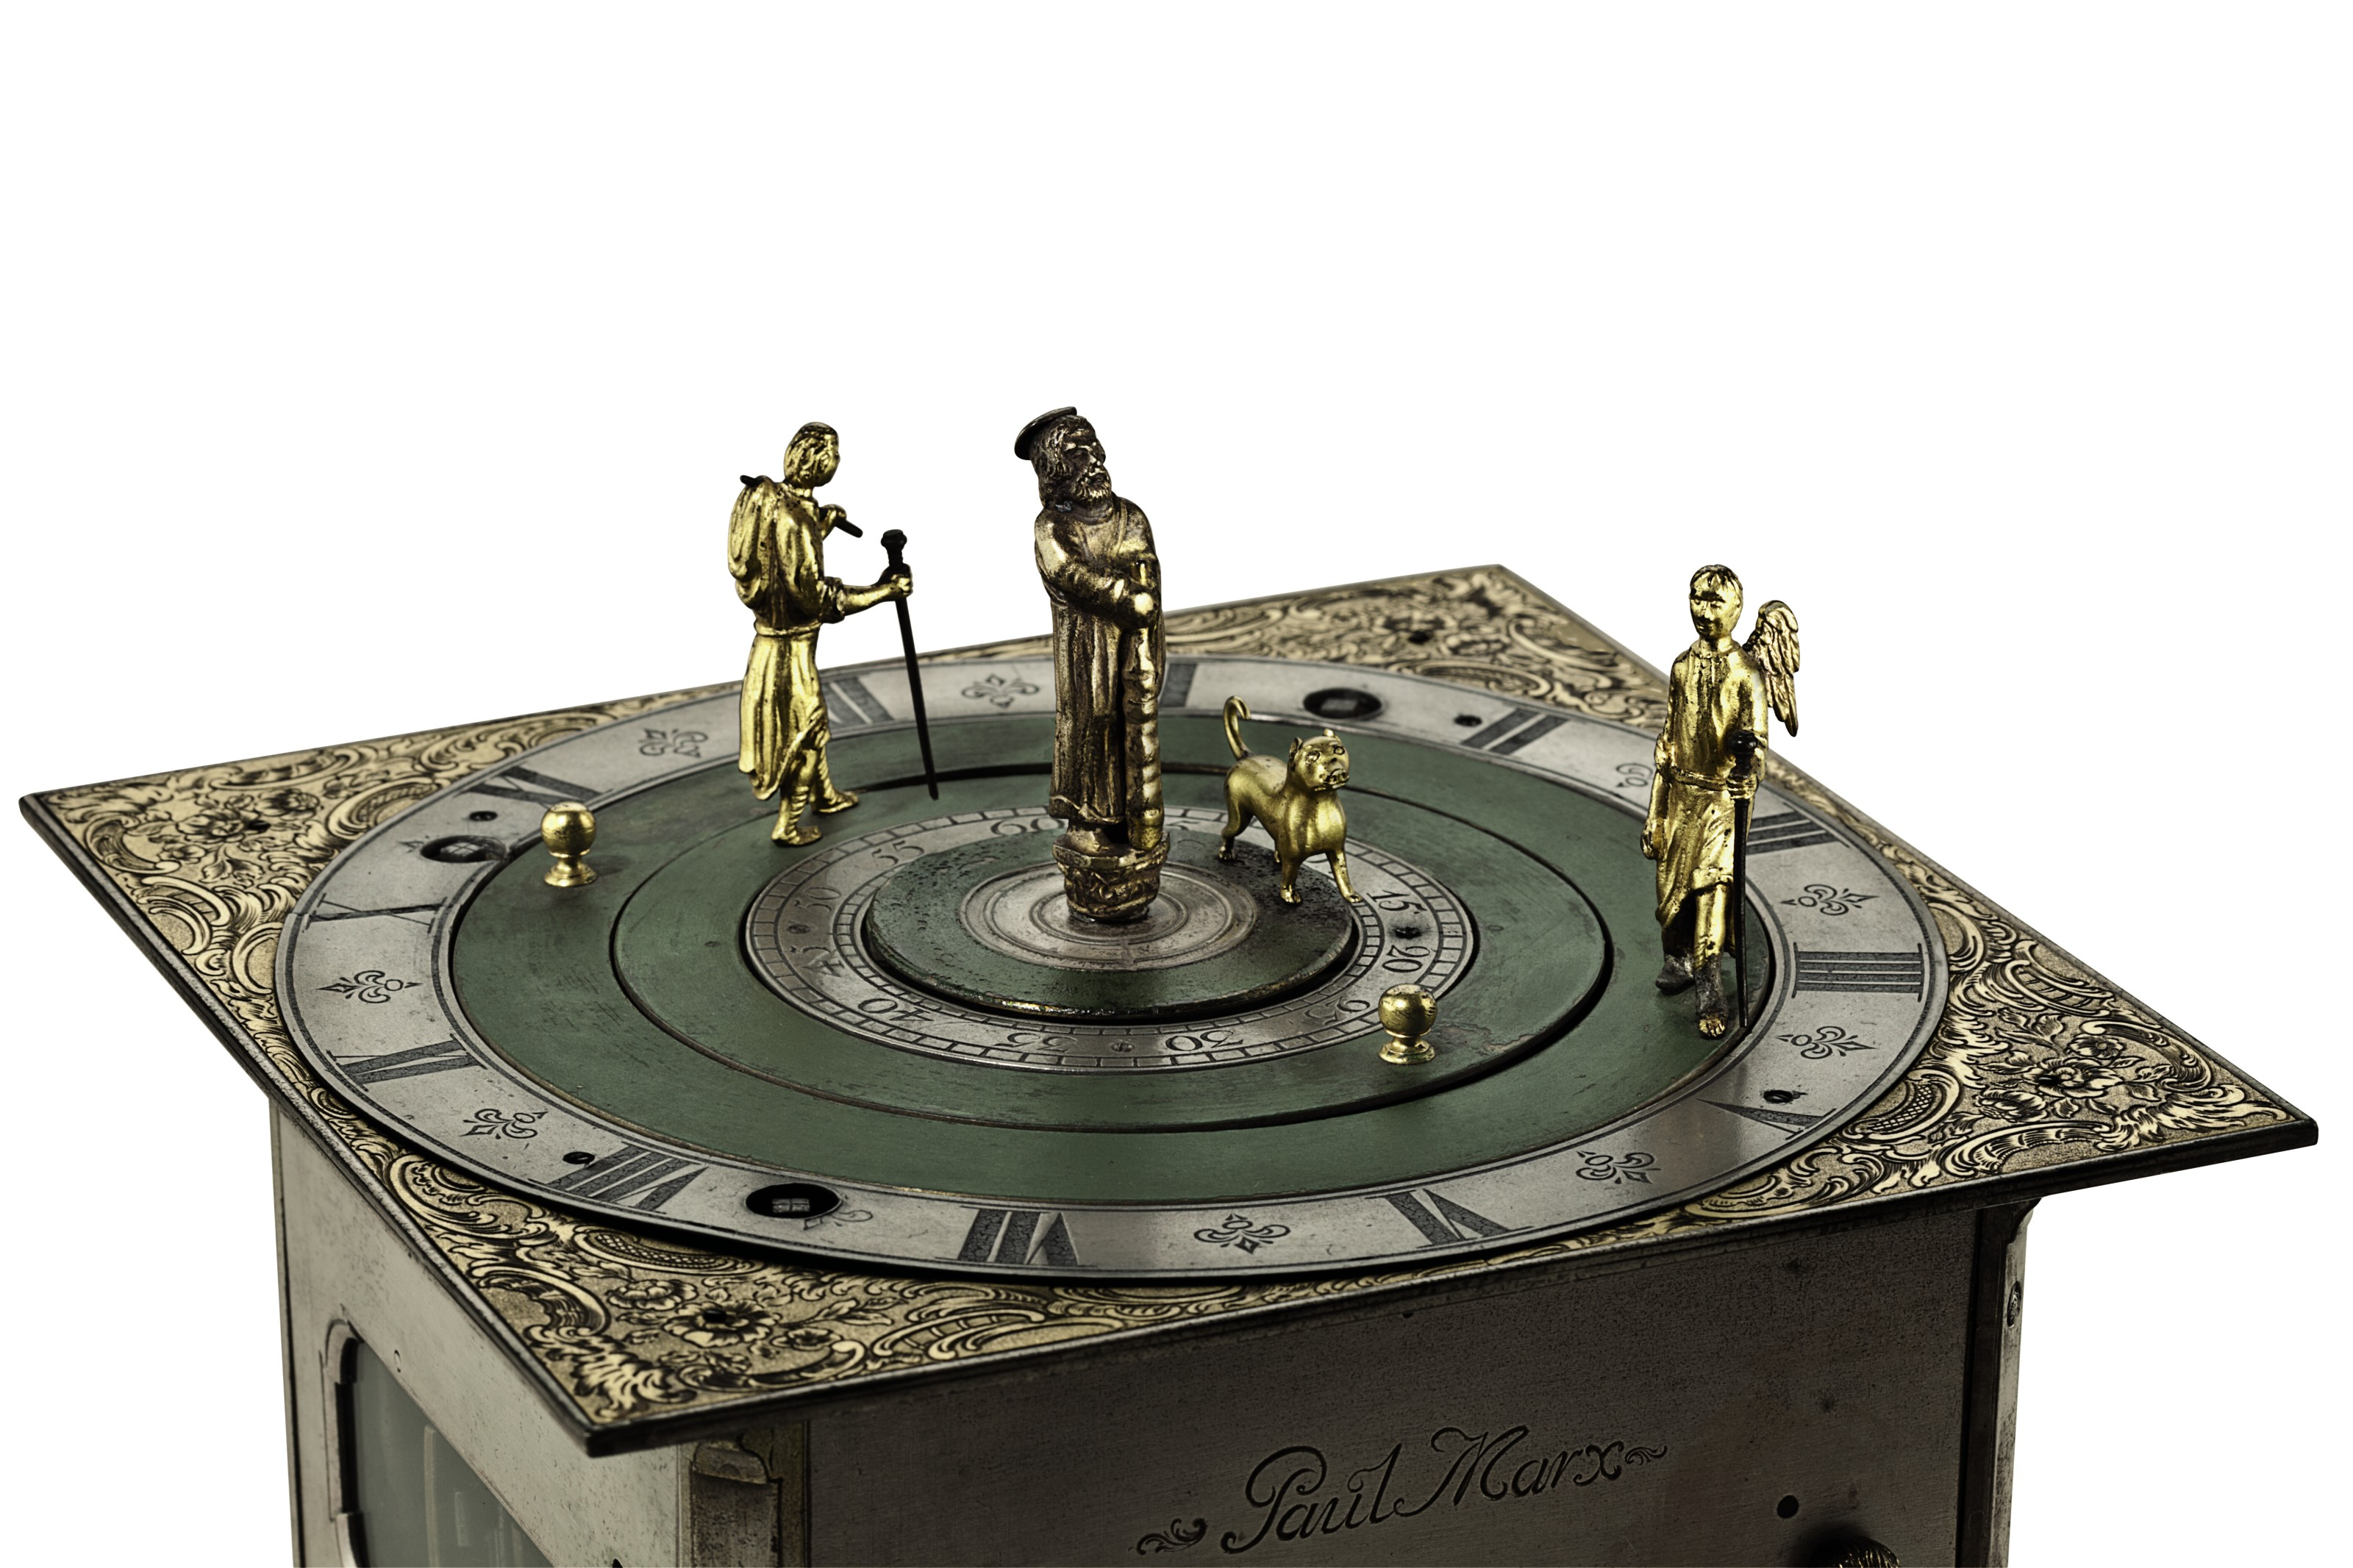 A GERMAN SILVERED, GILT AND PAINTED METAL QUARTER-STRIKING AND REPEATING AUTOMATON TABLE CLOCK